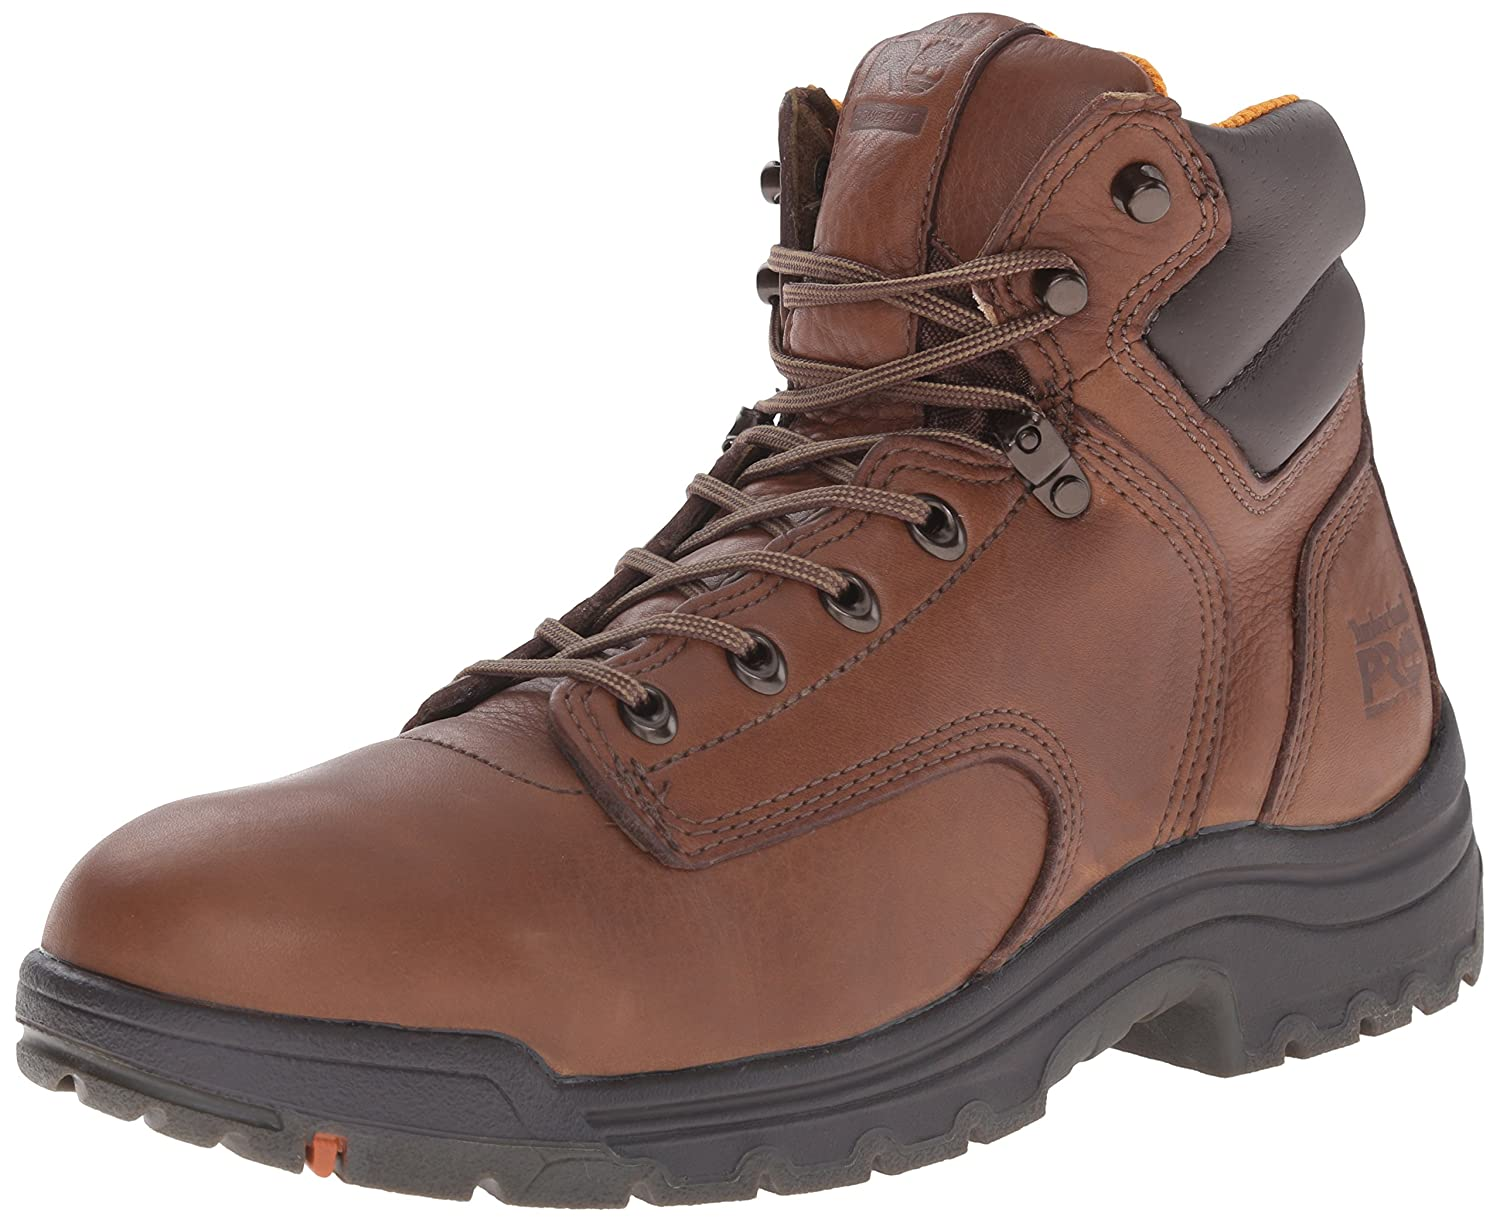 Timberland PRO メンズ B000XR8CLE 8 D(M) US|Coffee/Brown Coffee/Brown 8 D(M) US